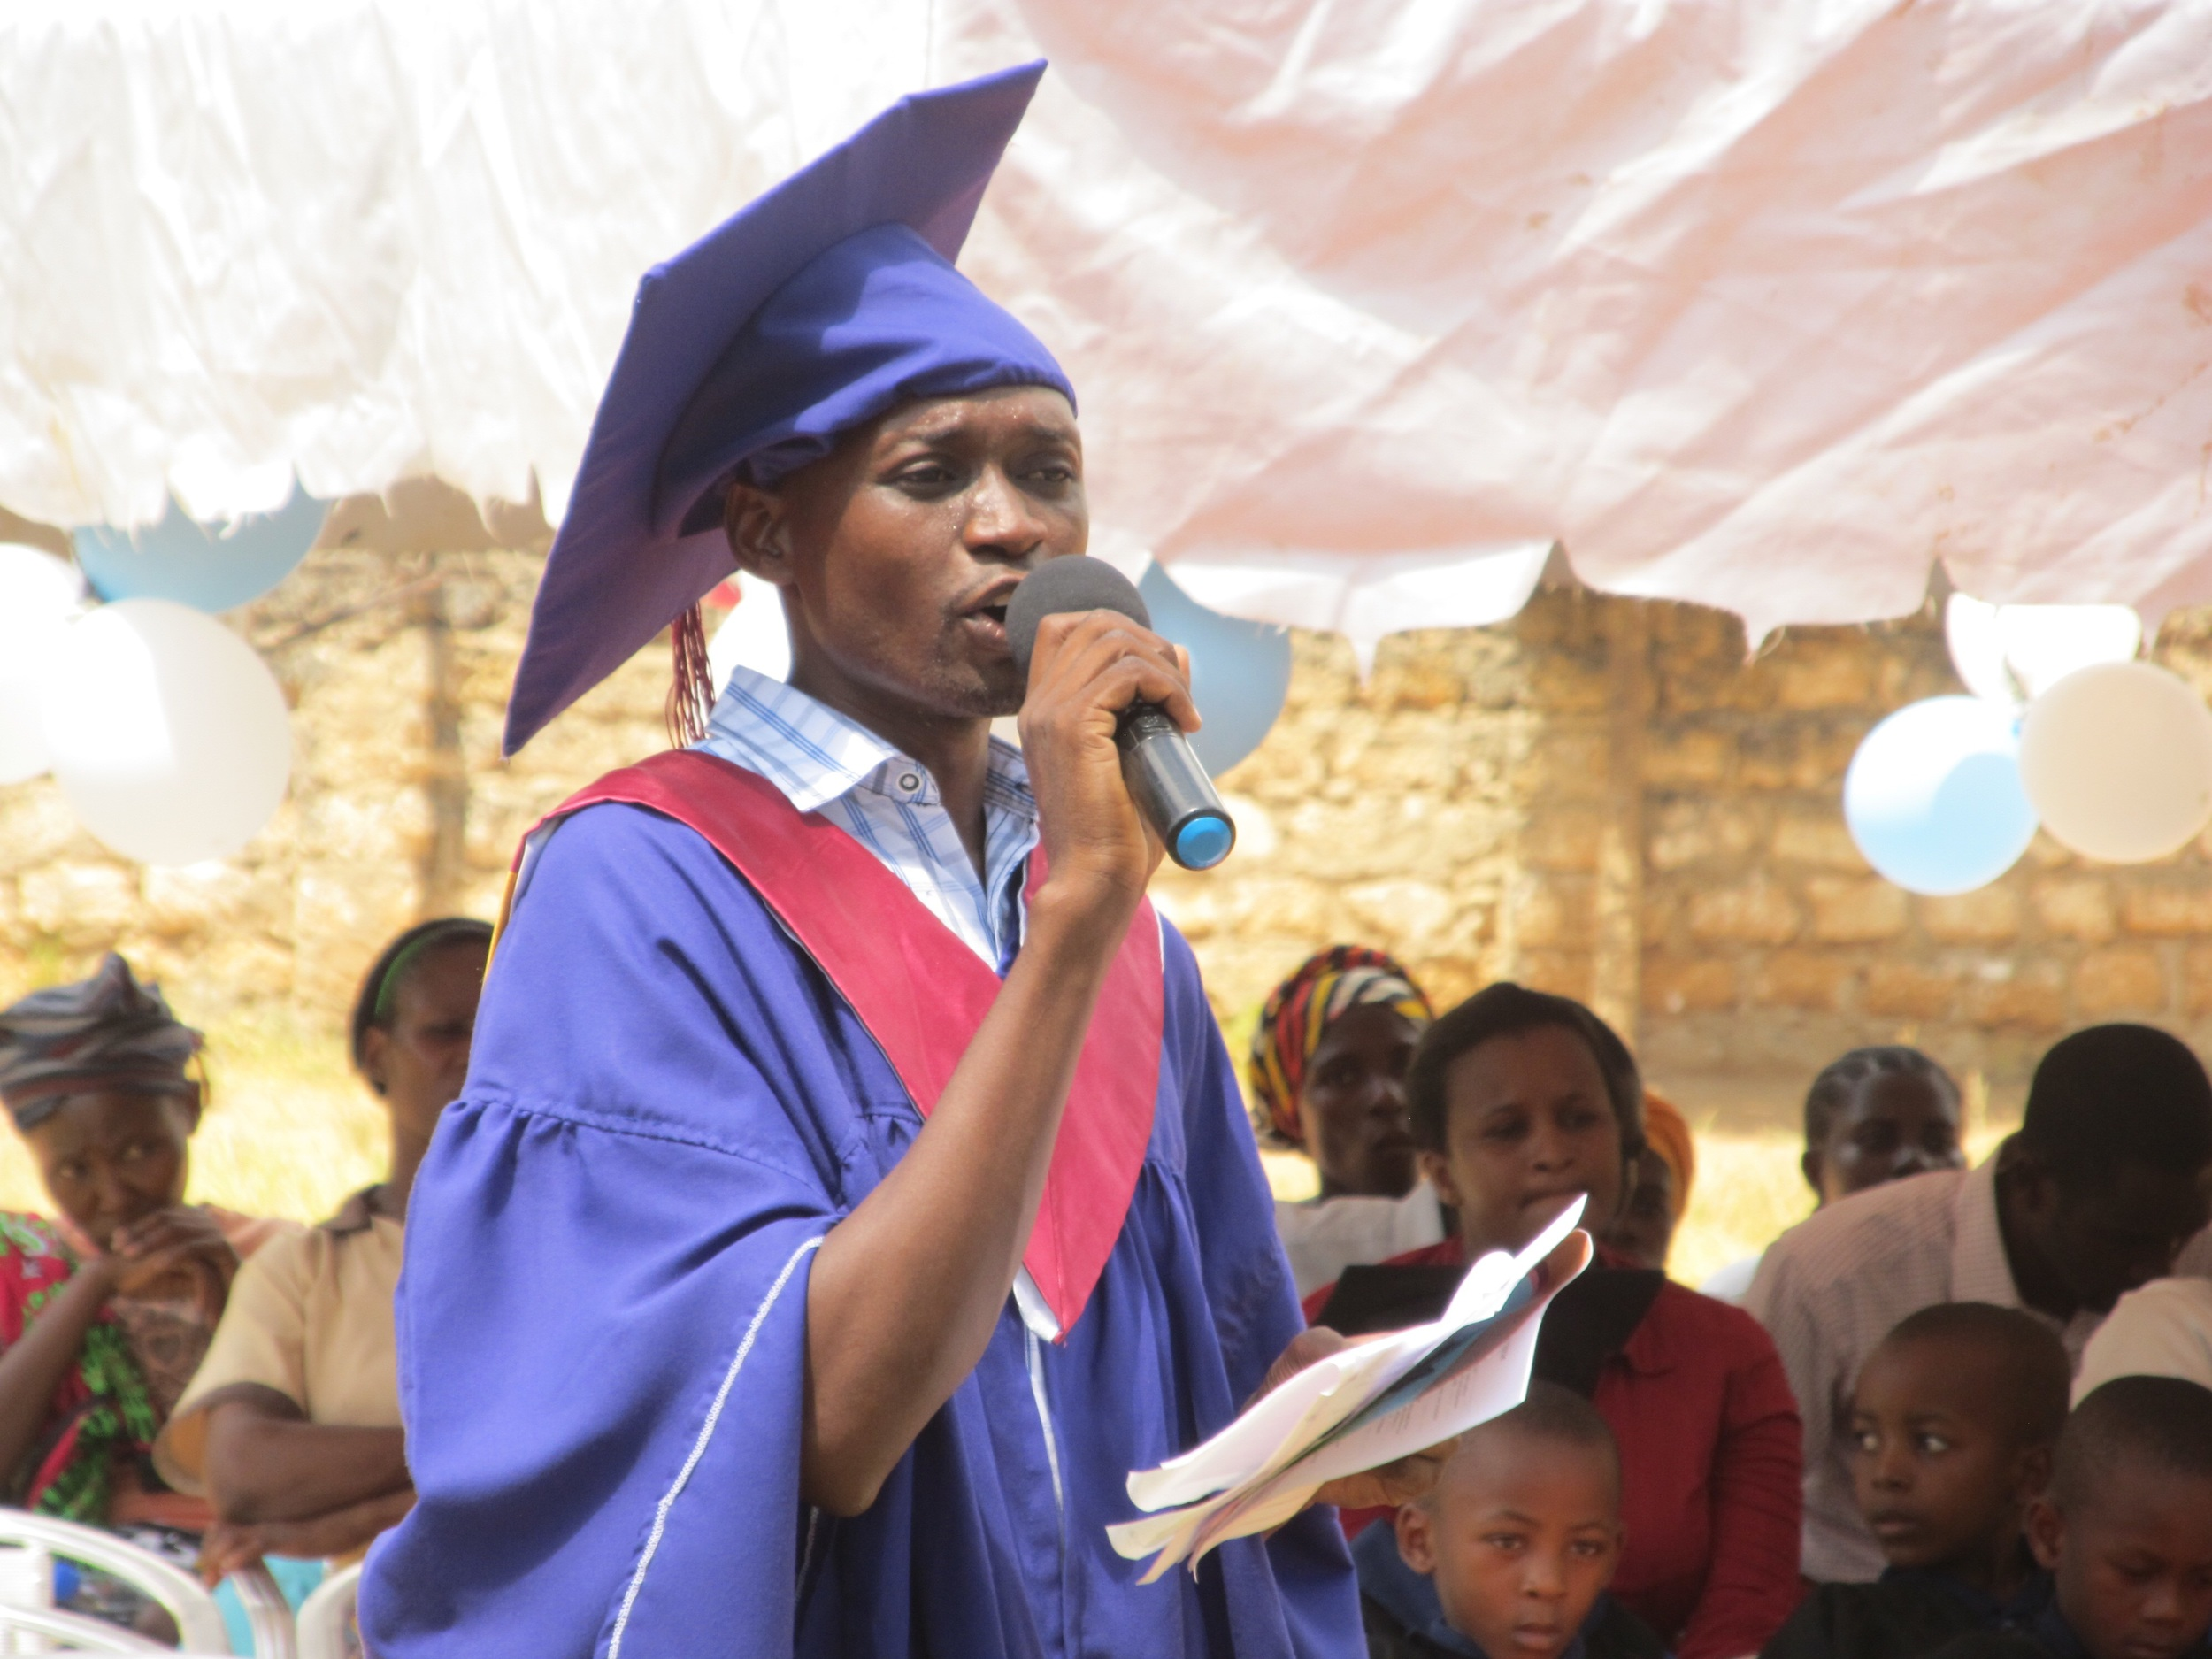 Head Teacher Victor acted as the emcee for the graduation ceremony.